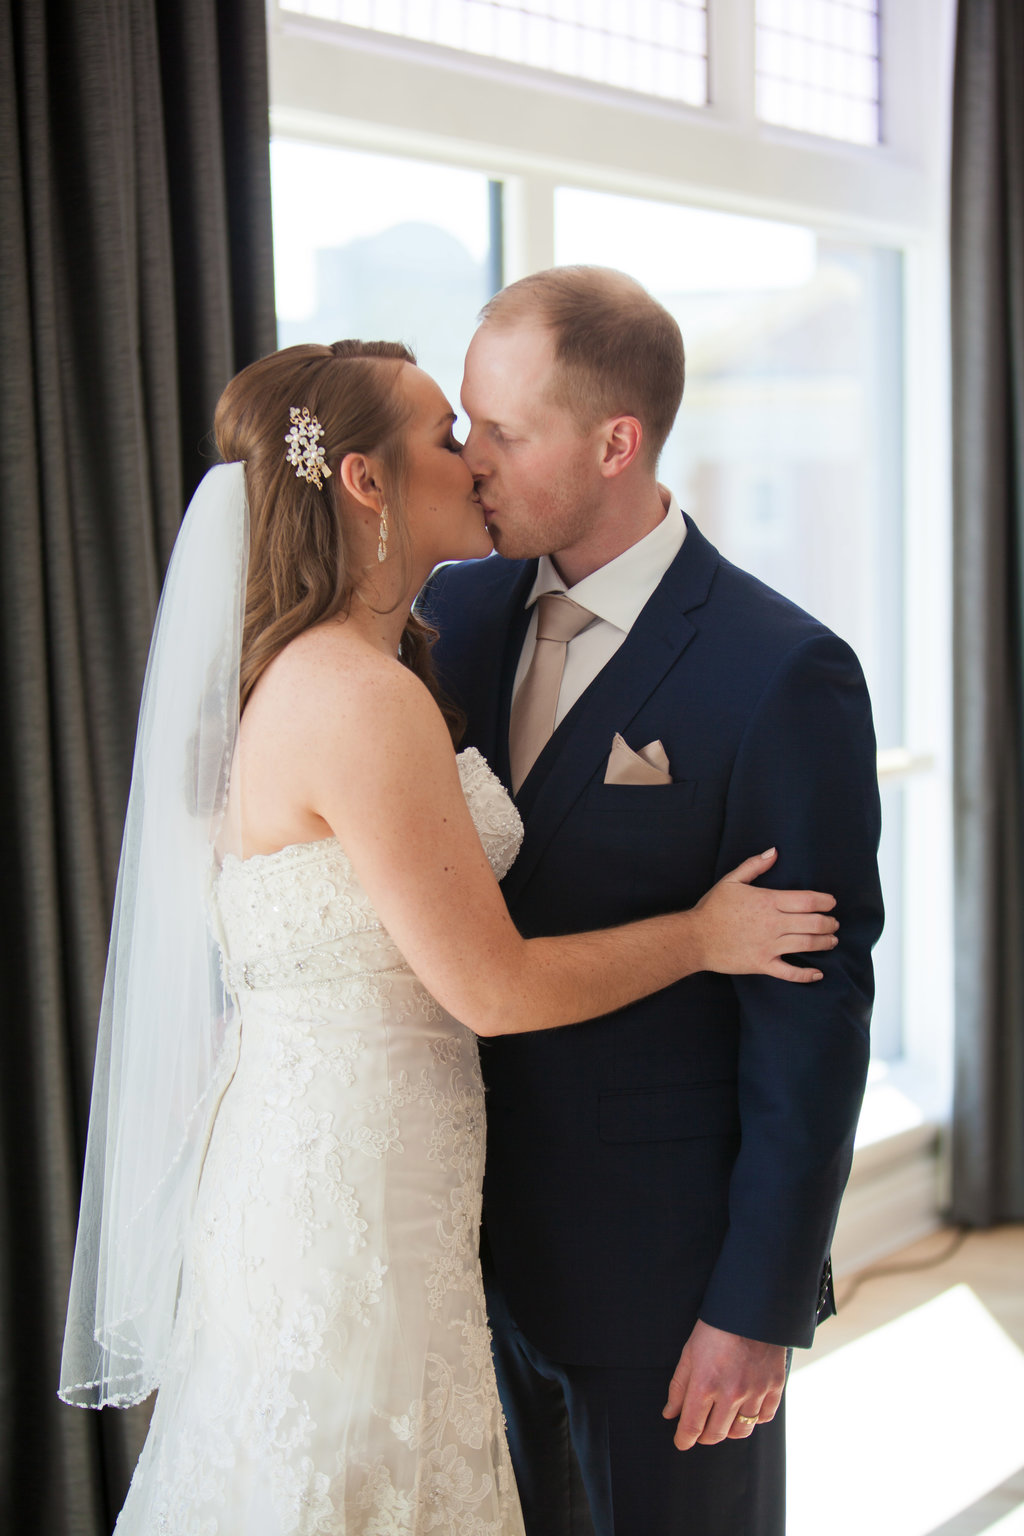 real sex after marriage images in Medicine Hat